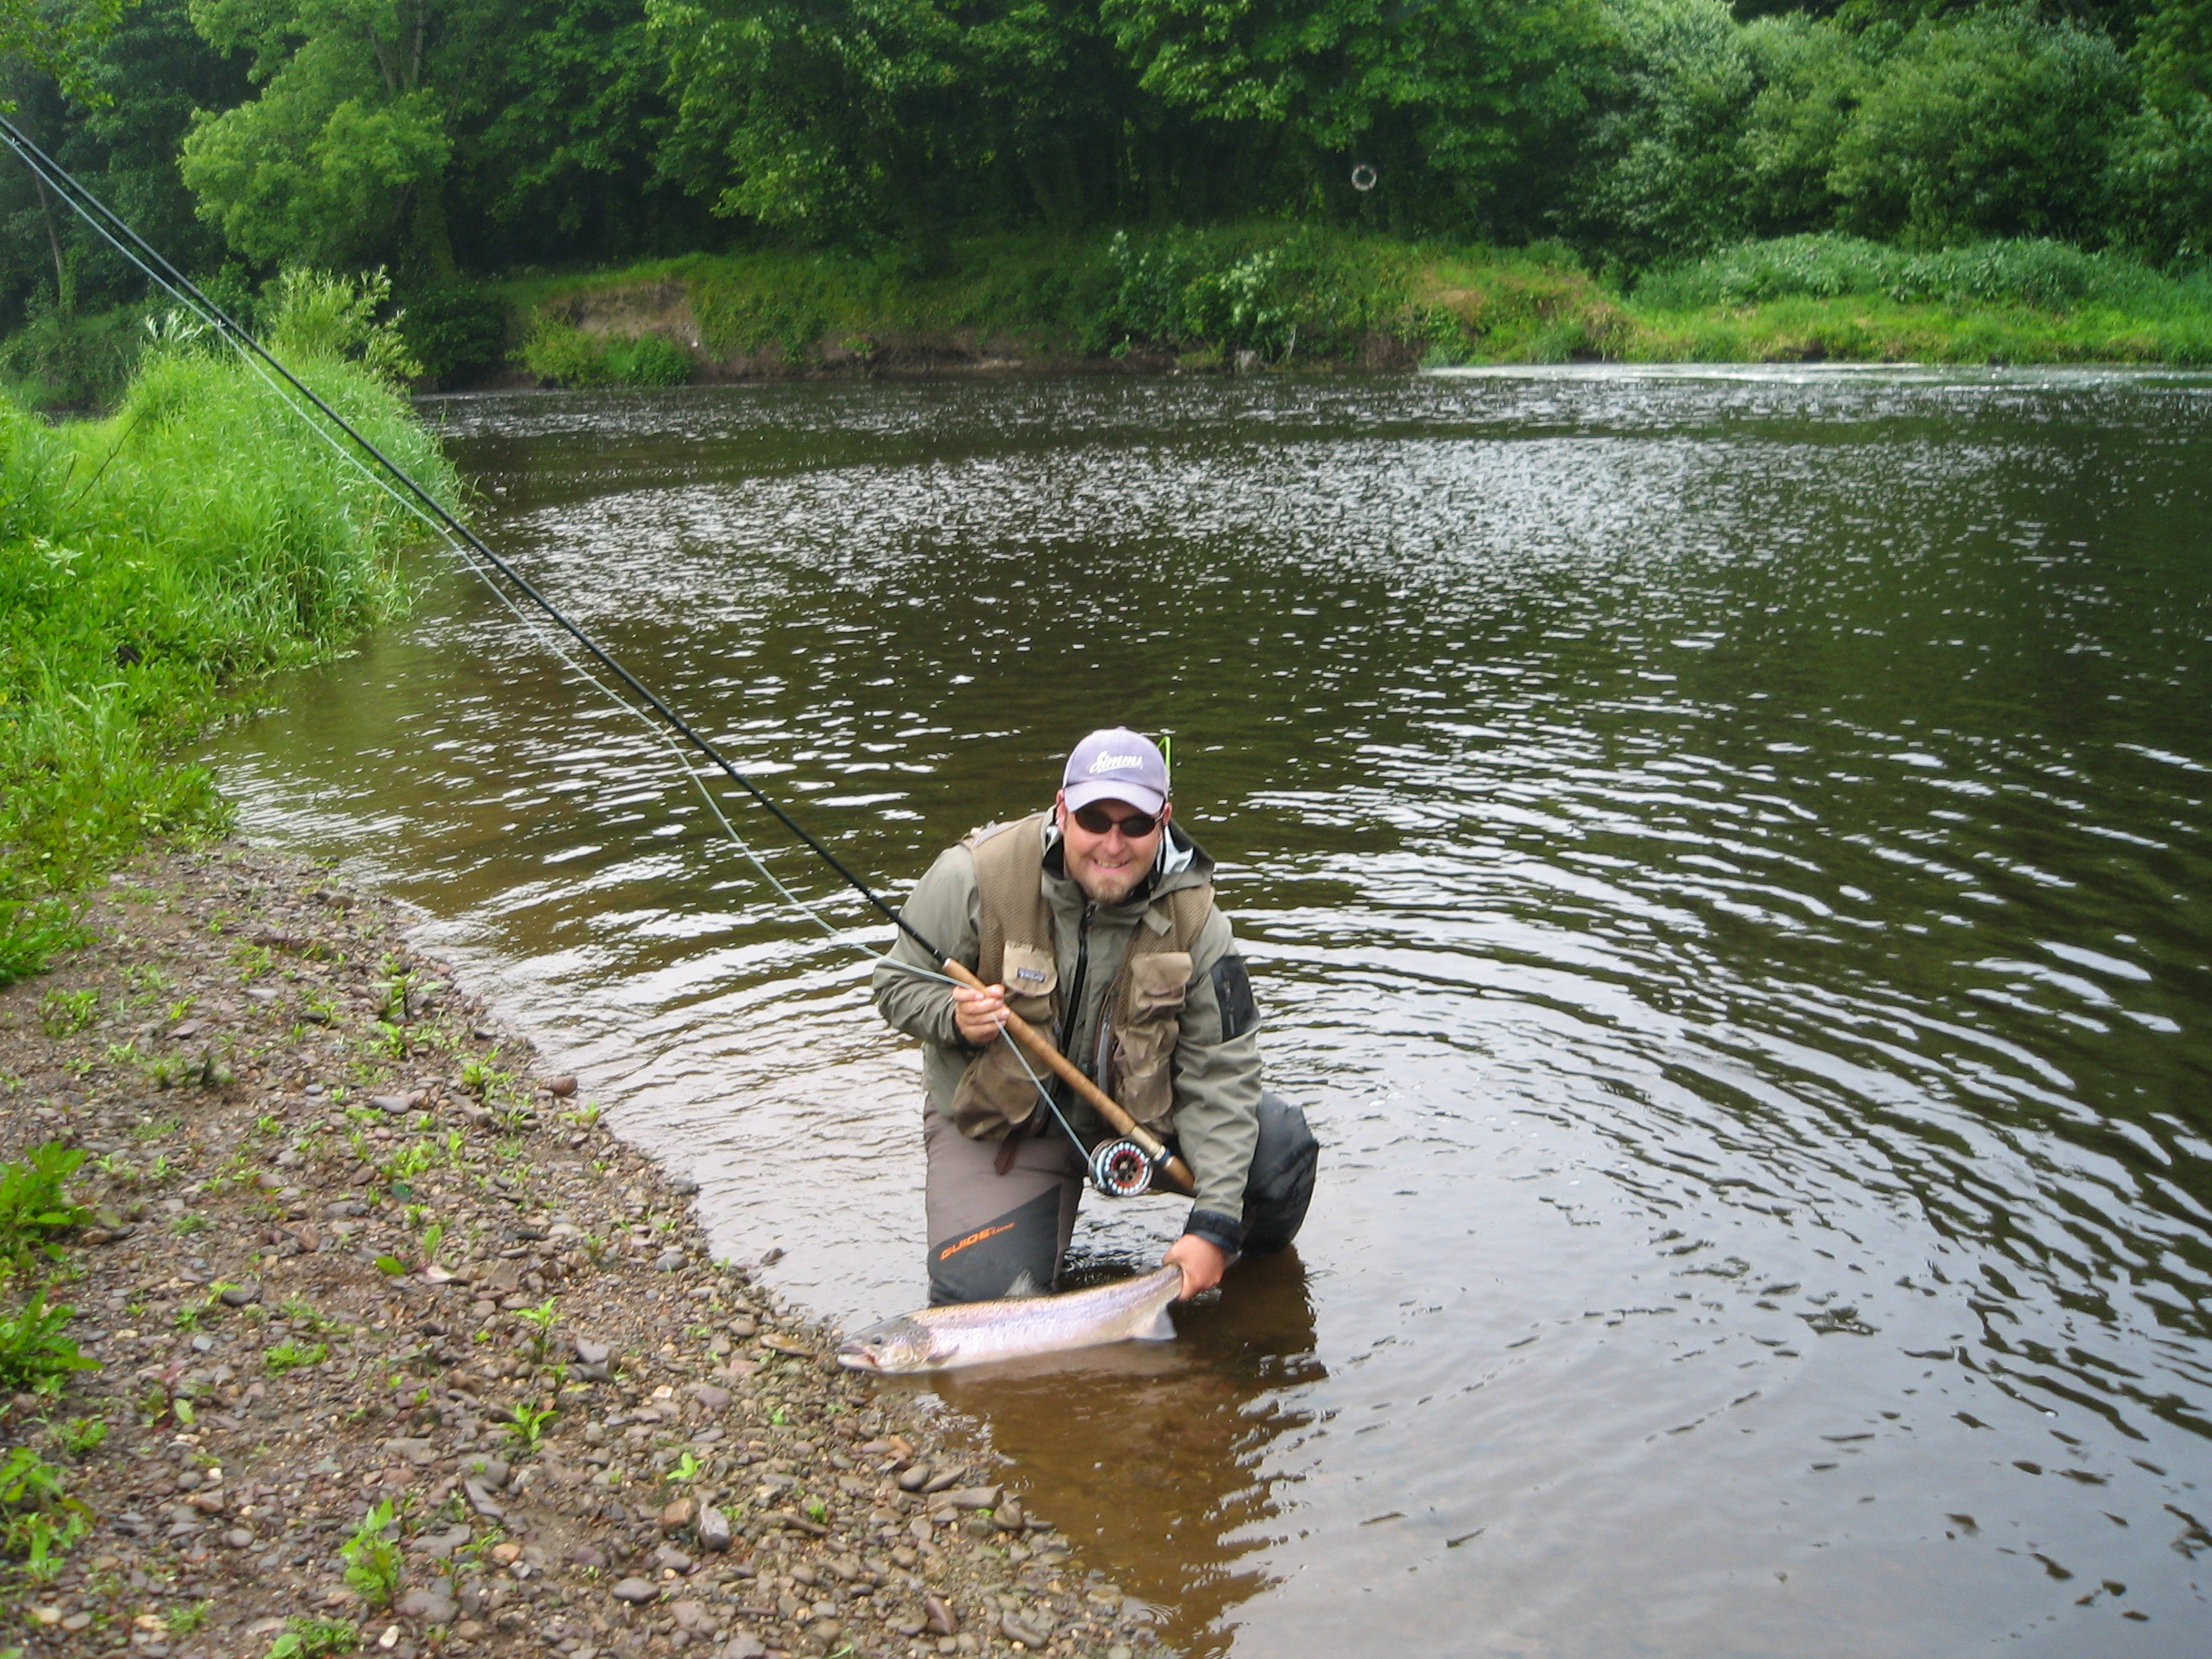 River drowes salmon fly fishing weekend course game for River fishing games